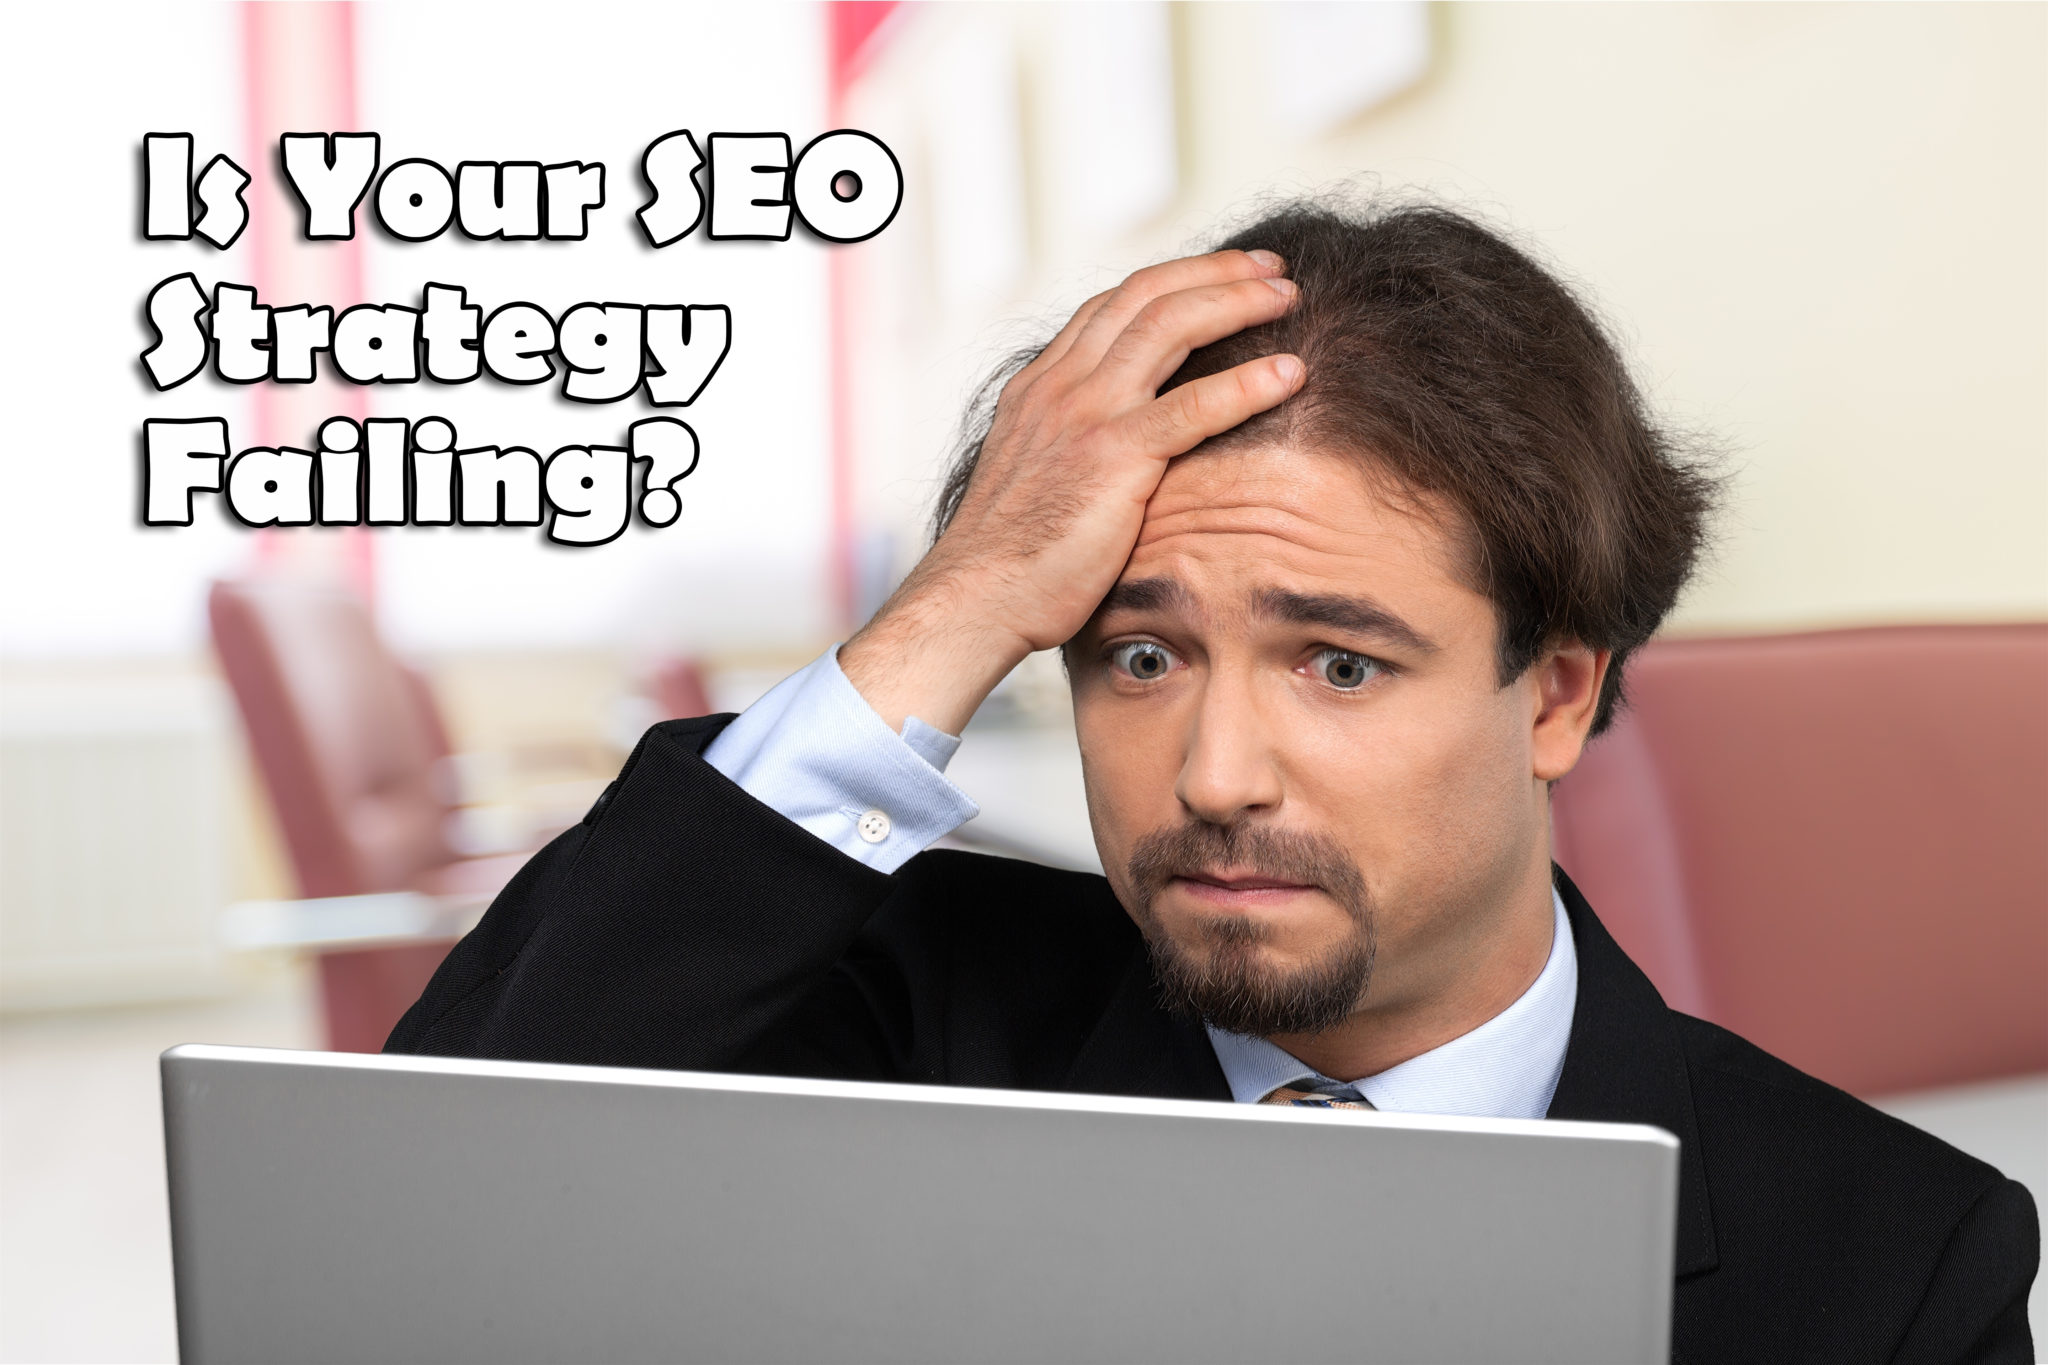 Is Your SEO Strategy Falling?